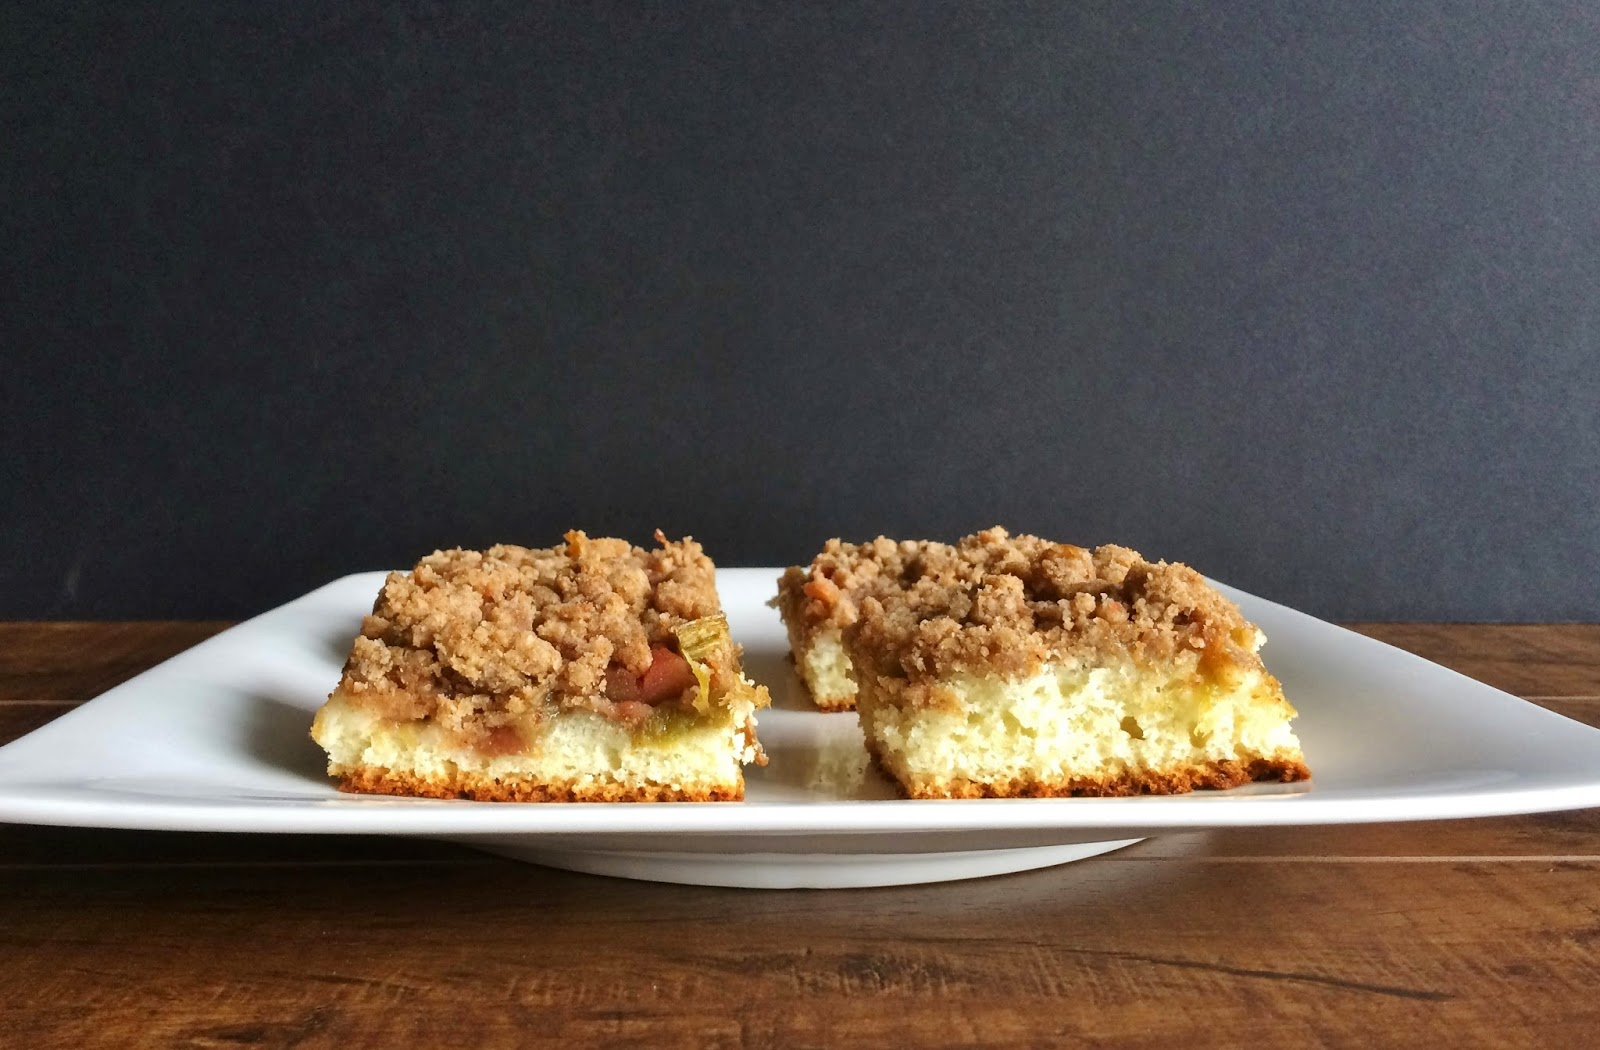 My Tiny Oven Rhubarb Snacking Cake